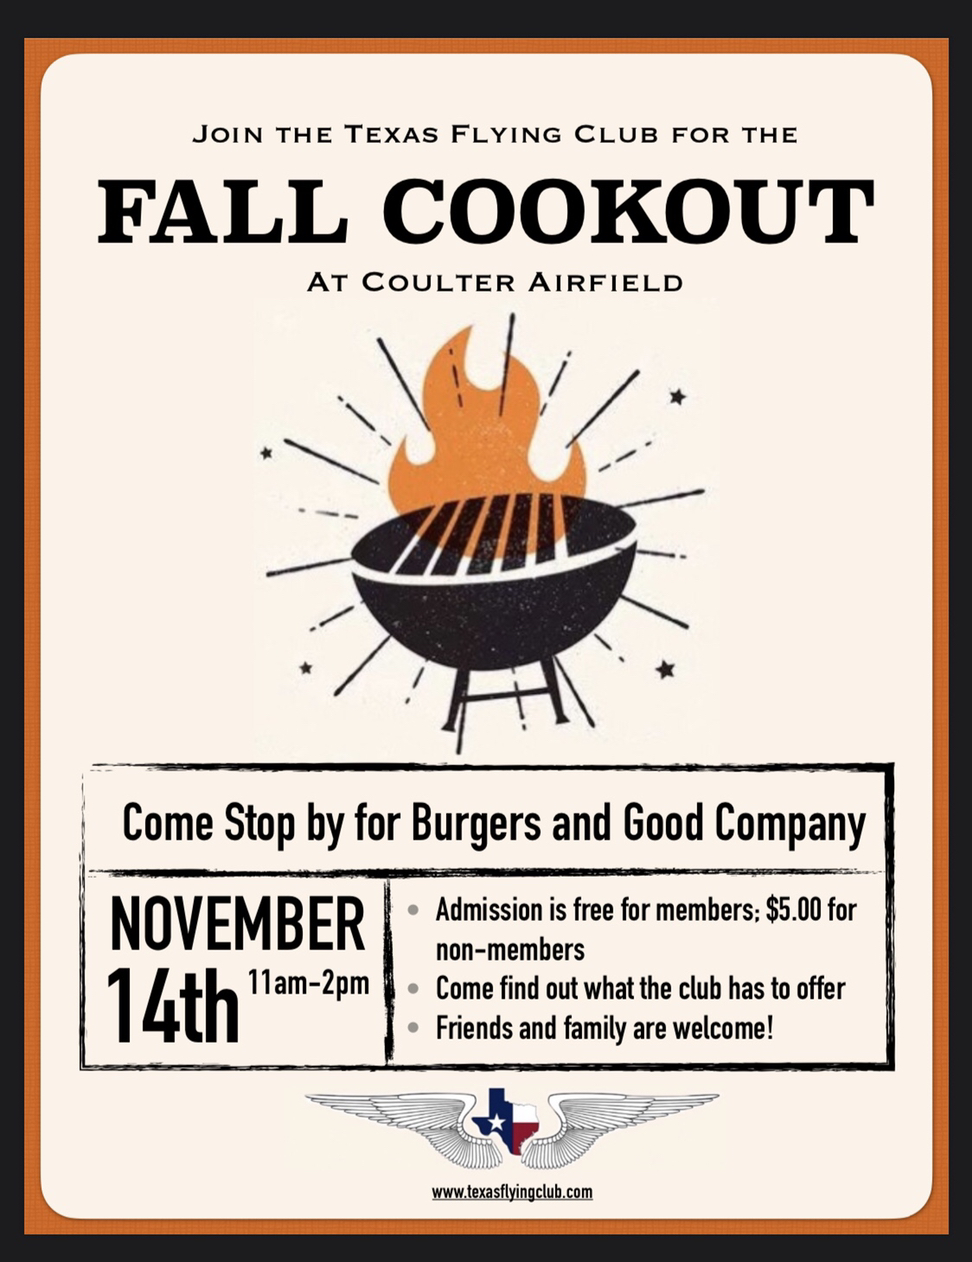 TFC Club Cookout November 14th!